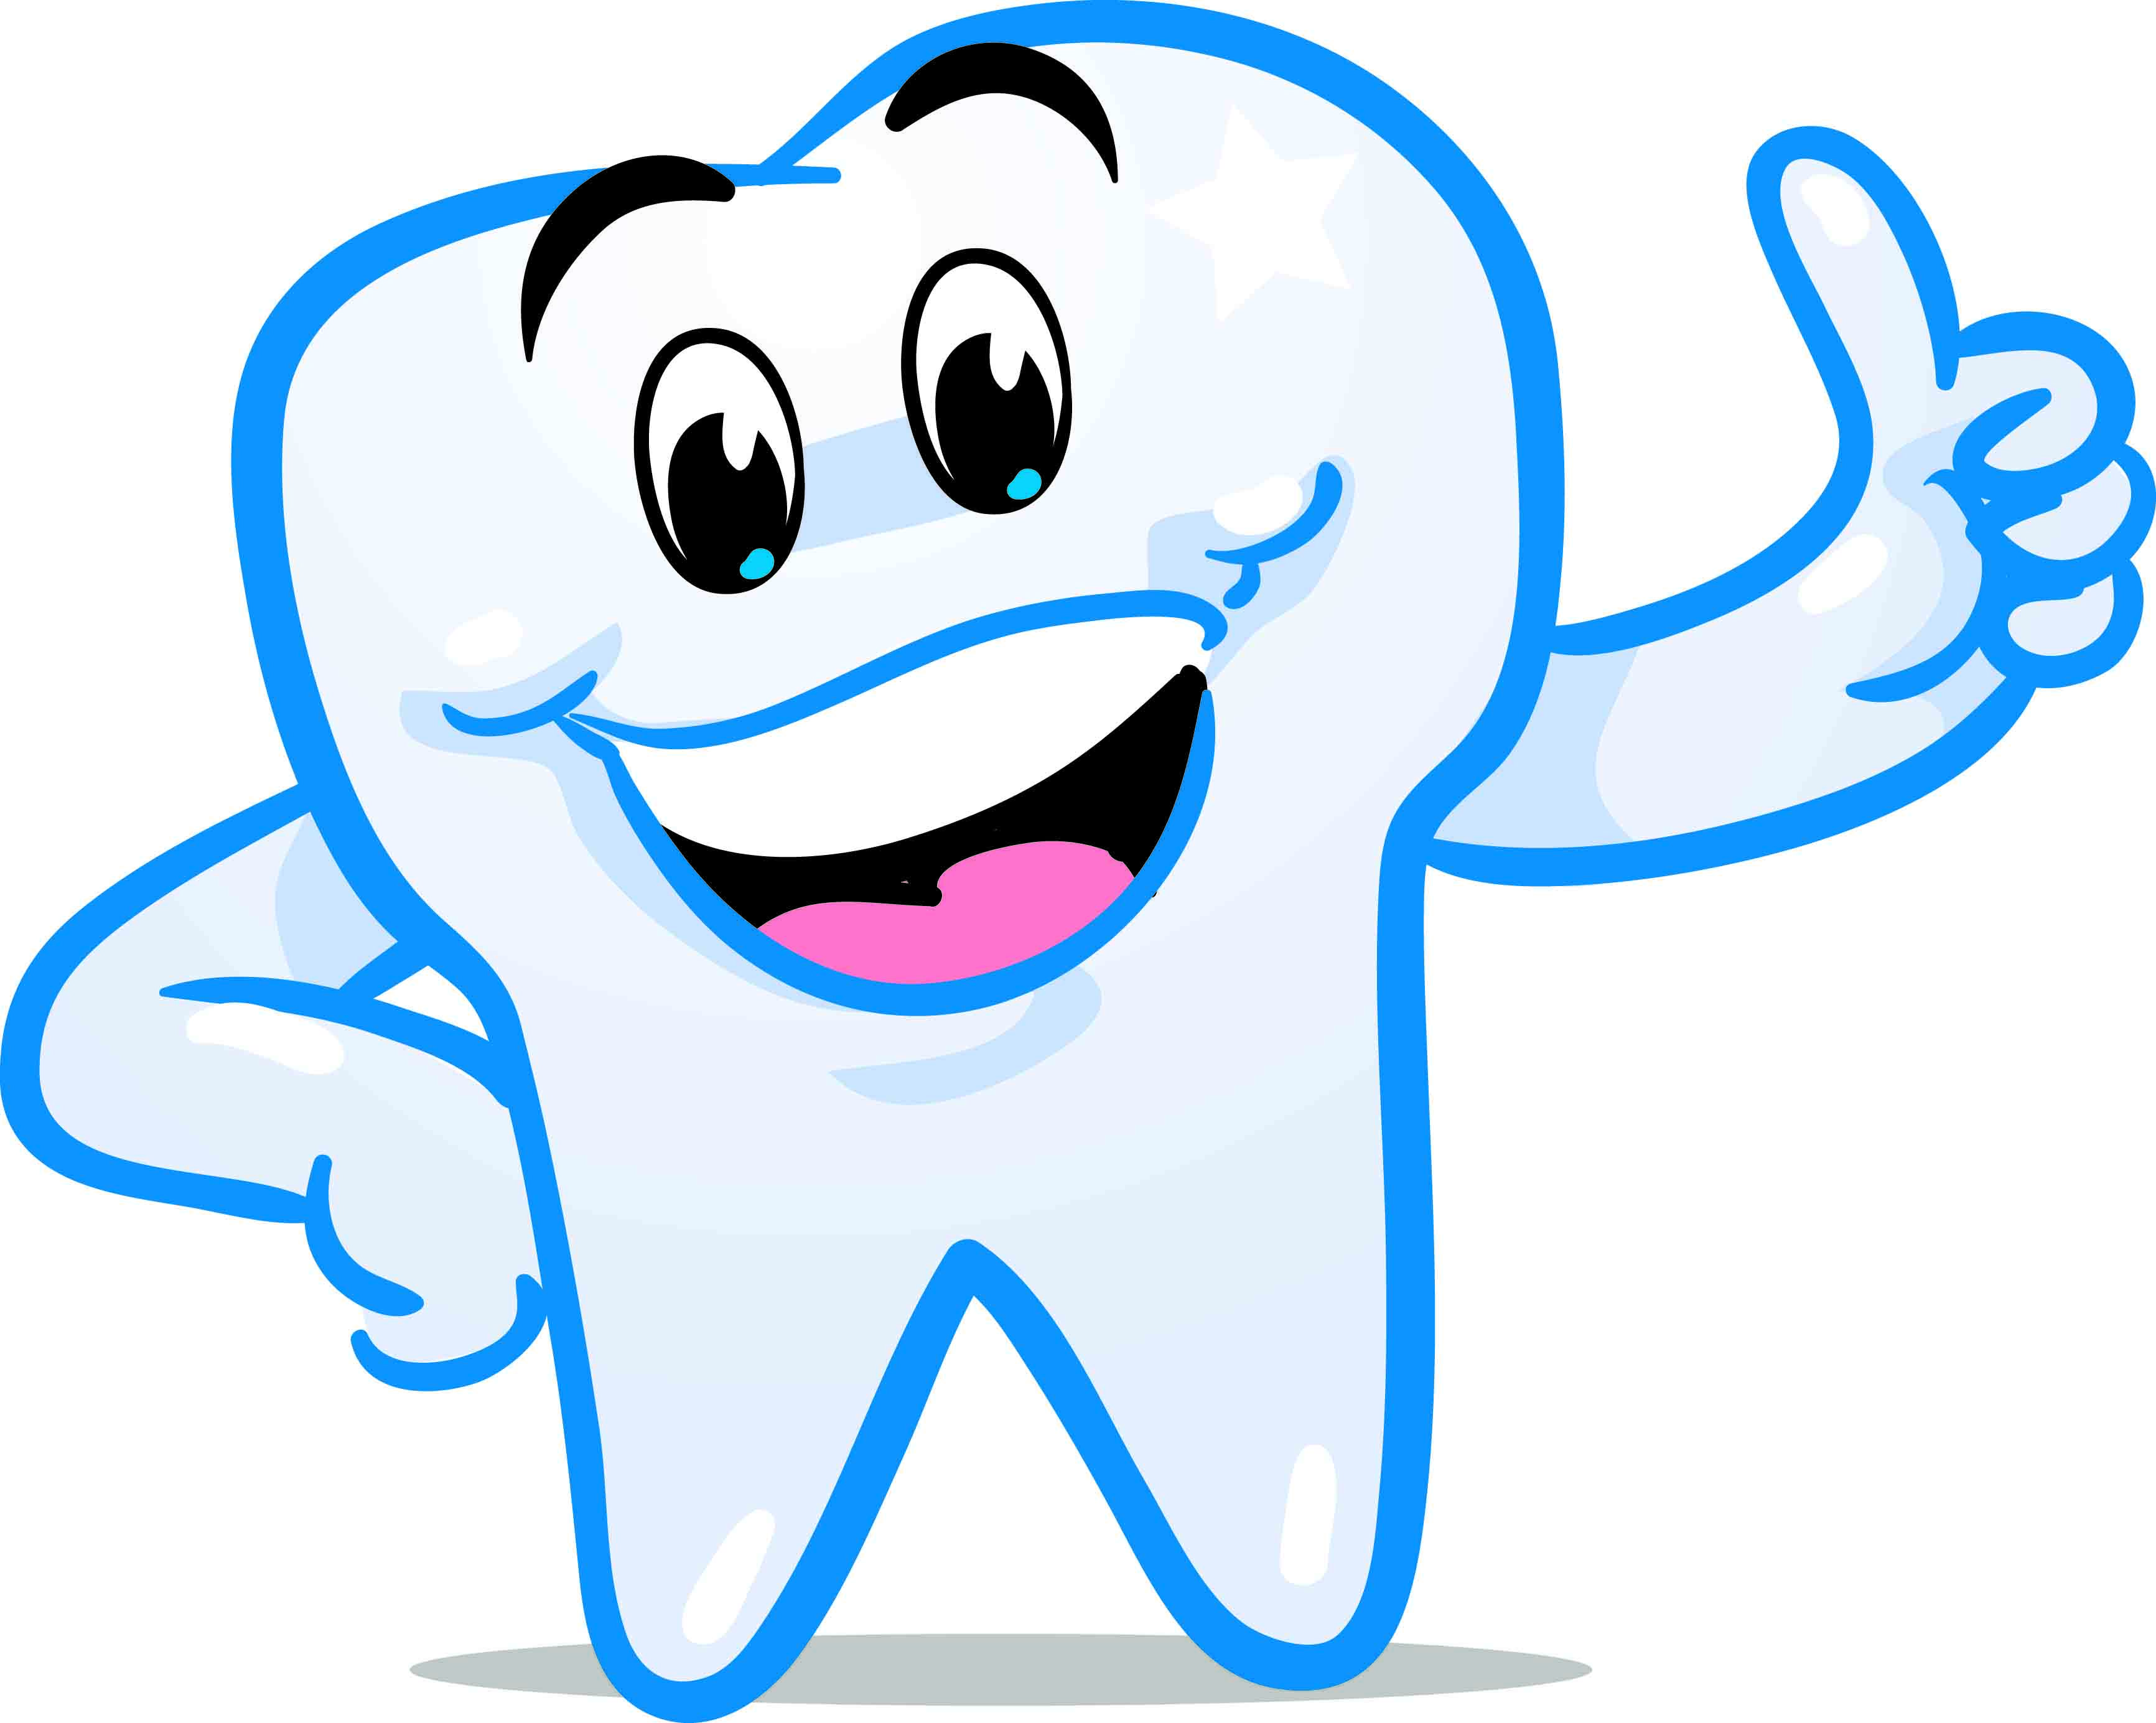 Dental clipart perfect smile. Tooth party ideas pinterest